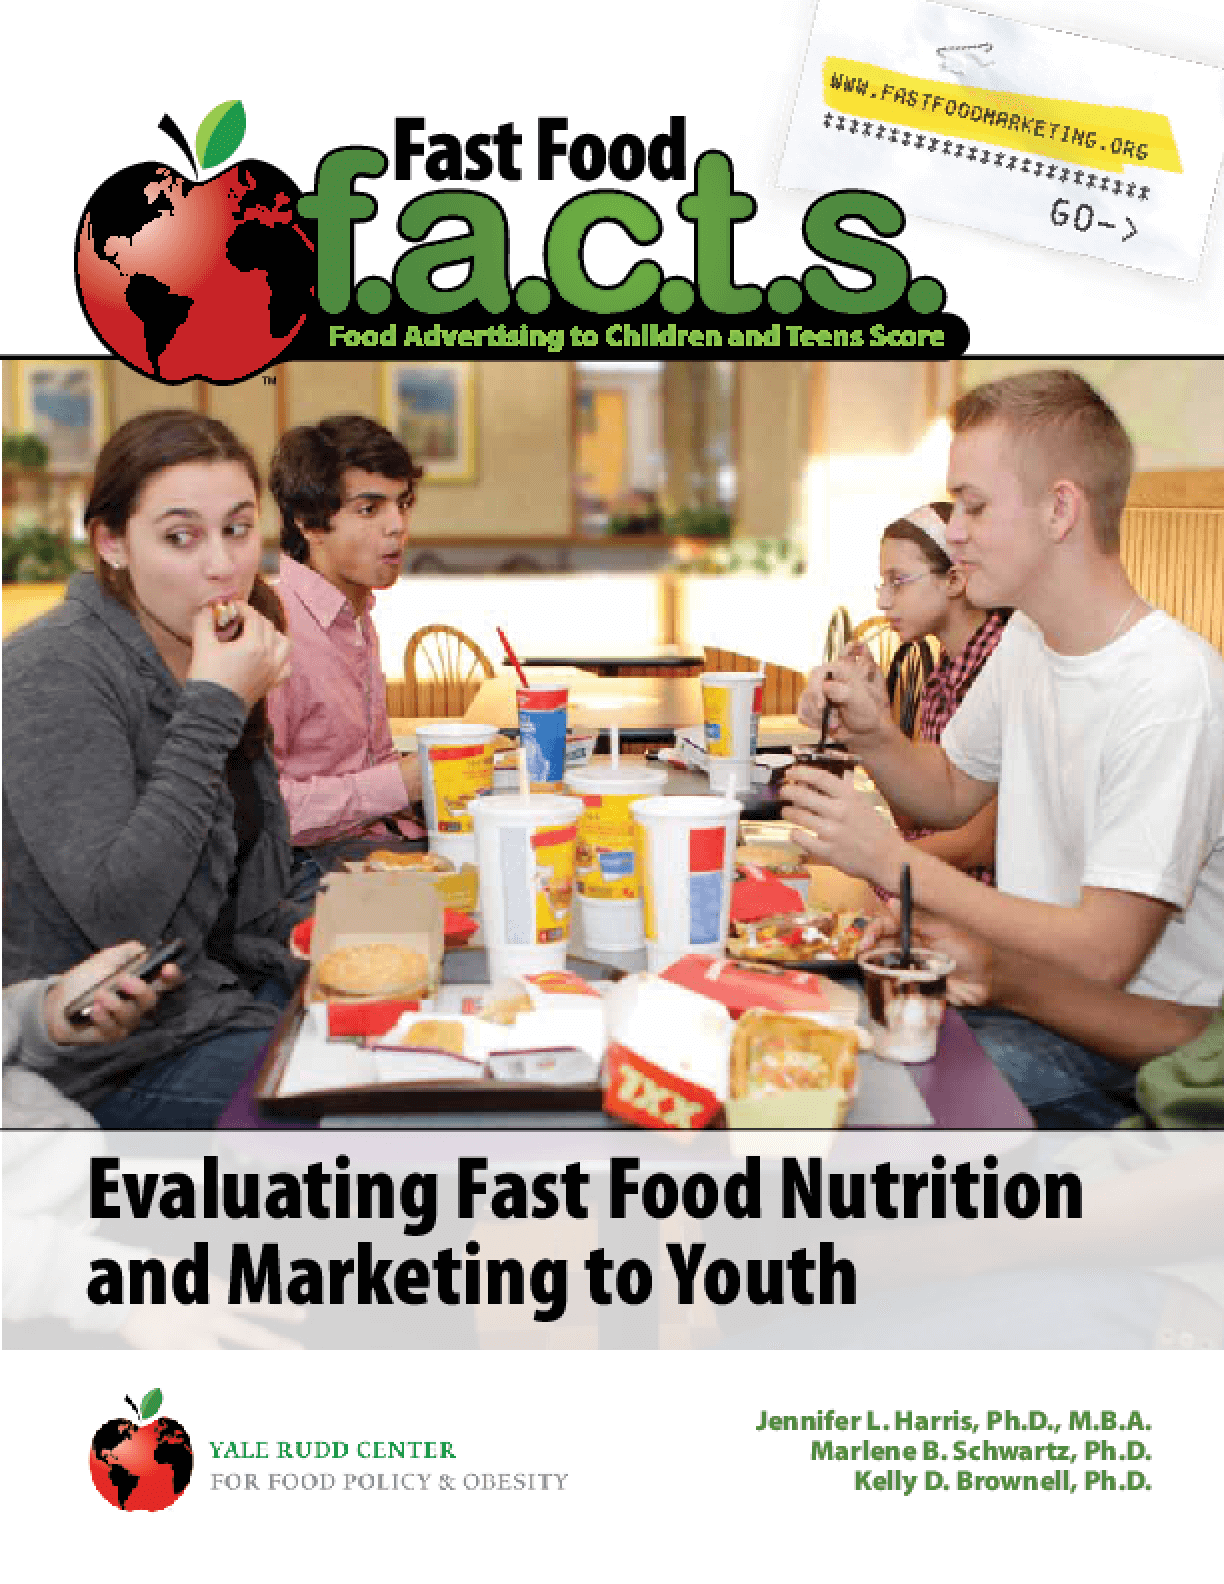 Fast Food FACTS: Evaluating Fast Food Nutrition and Marketing to Youth